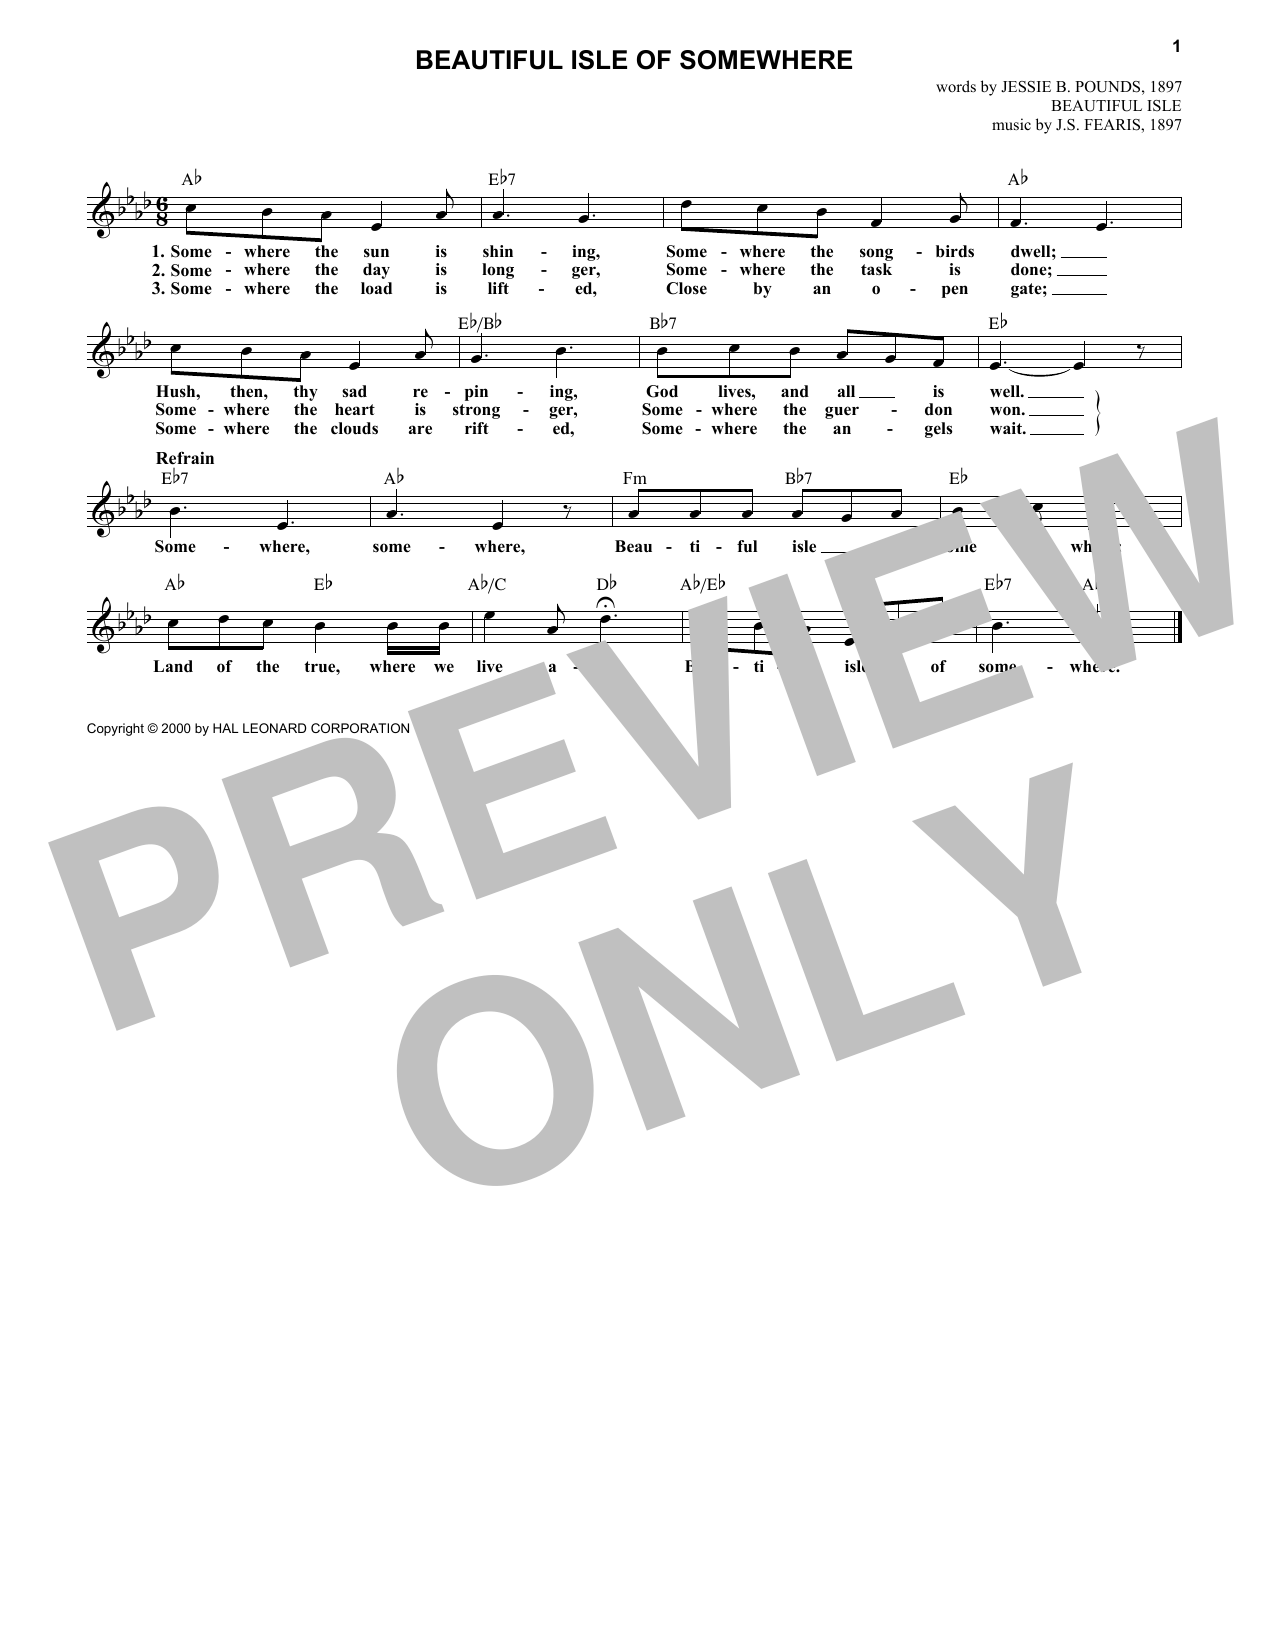 Jessie B. Pounds Beautiful Isle Of Somewhere sheet music notes and chords. Download Printable PDF.